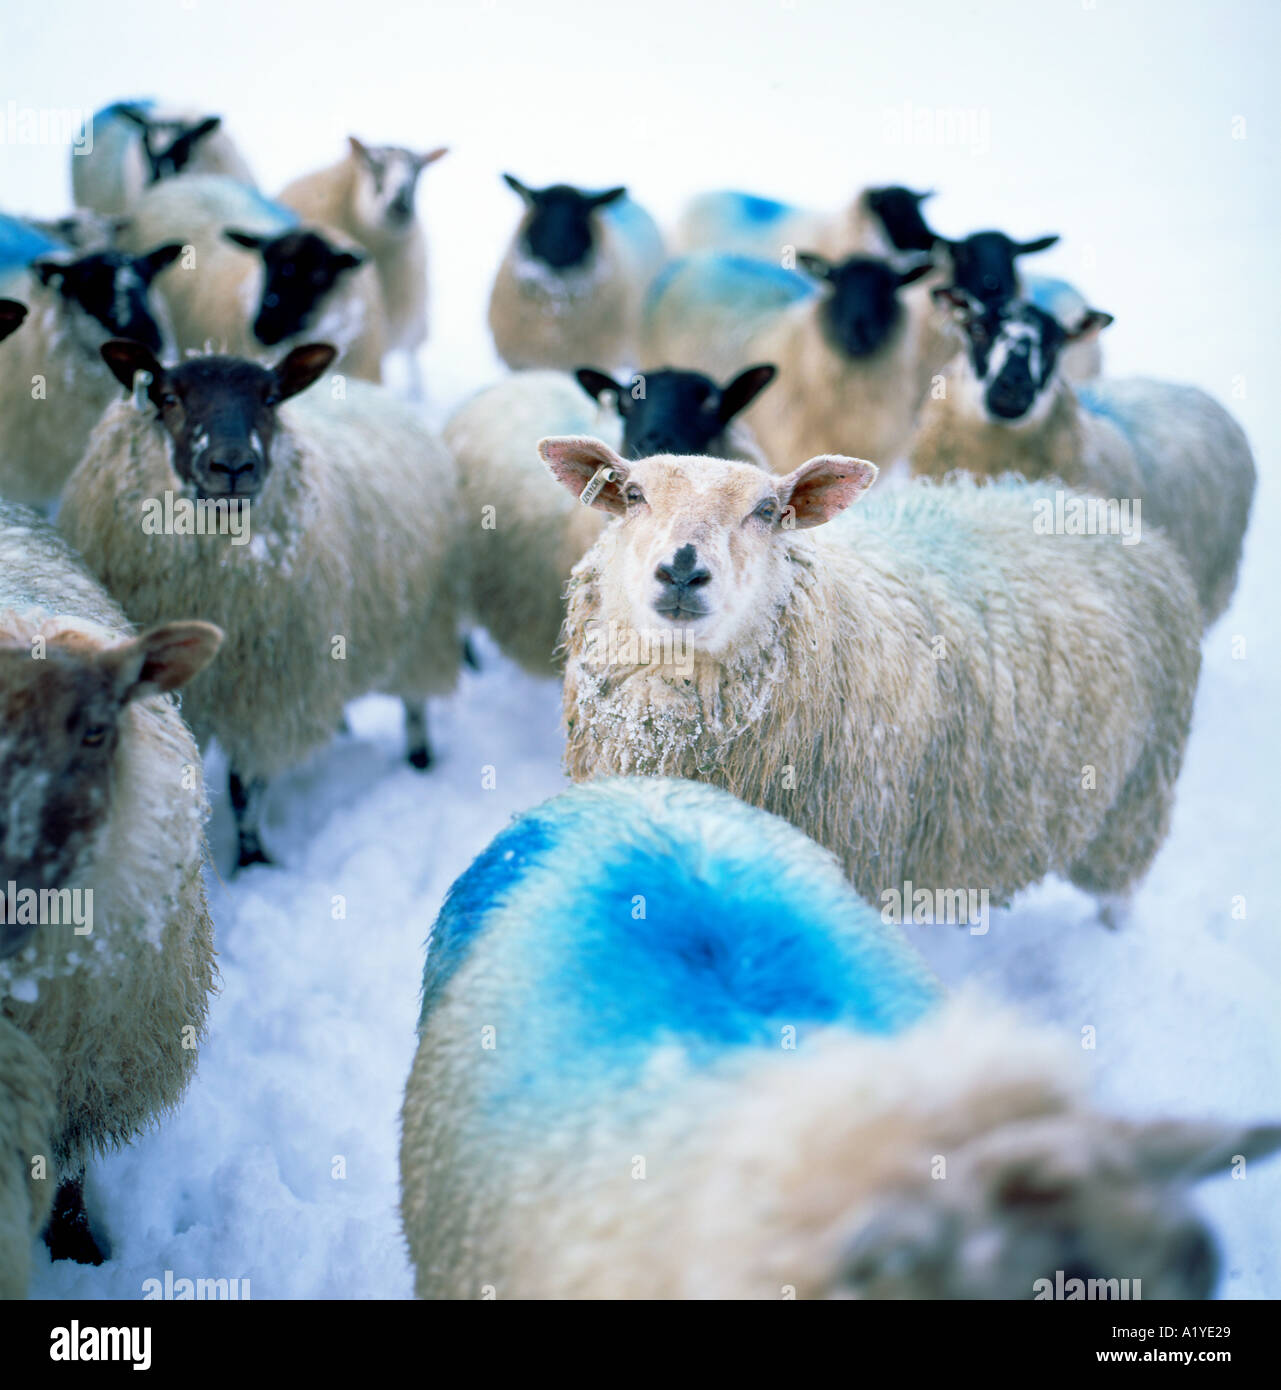 Sheep marked with blue raddle awaiting feeding in snow in winter Llanwrda Carmarthenshire Wales UK   KATHY DEWITT - Stock Image